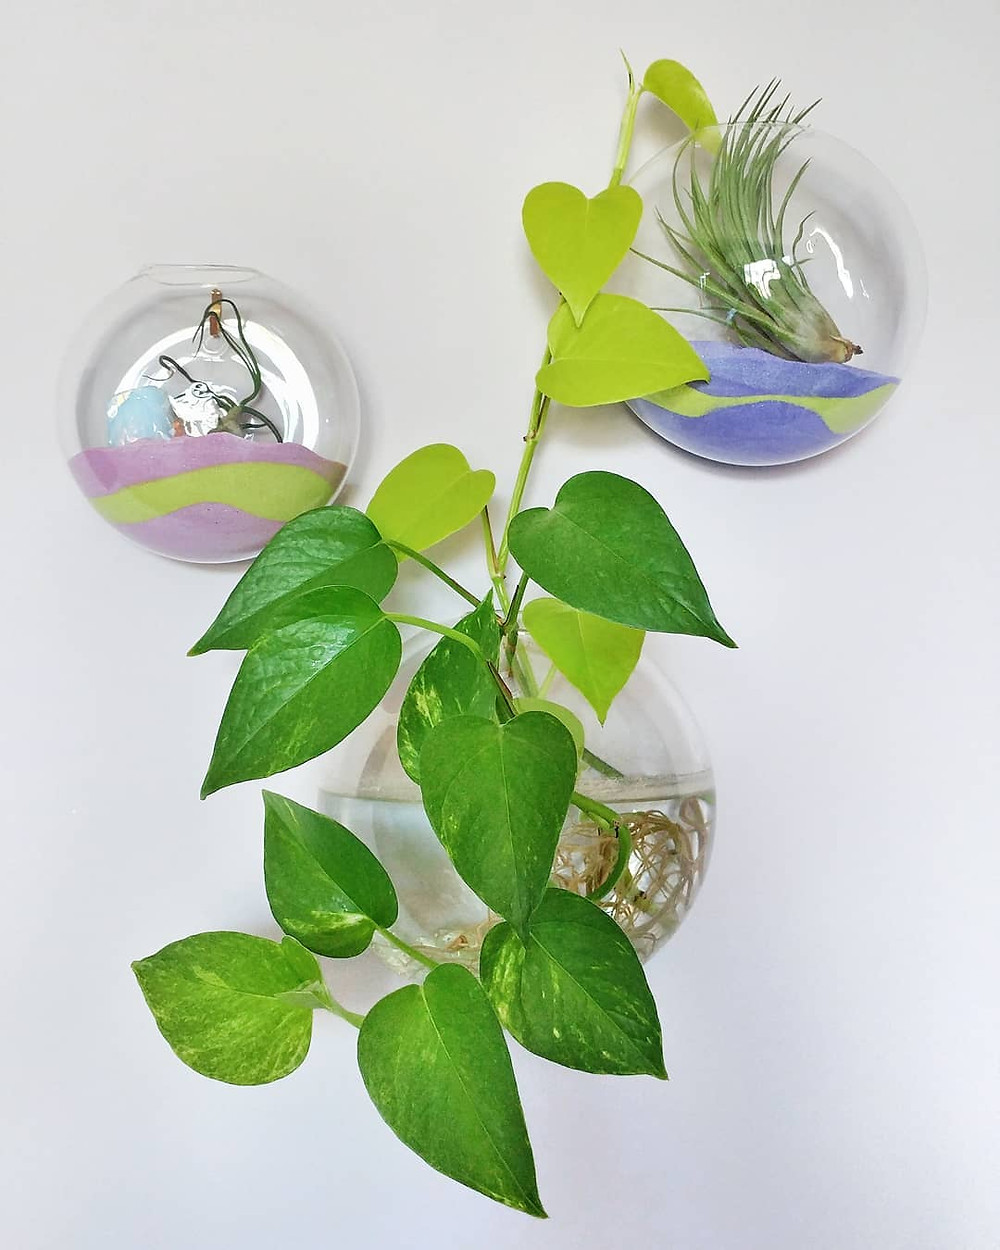 Pothos Houseplants You Can Propagate From Cuttings